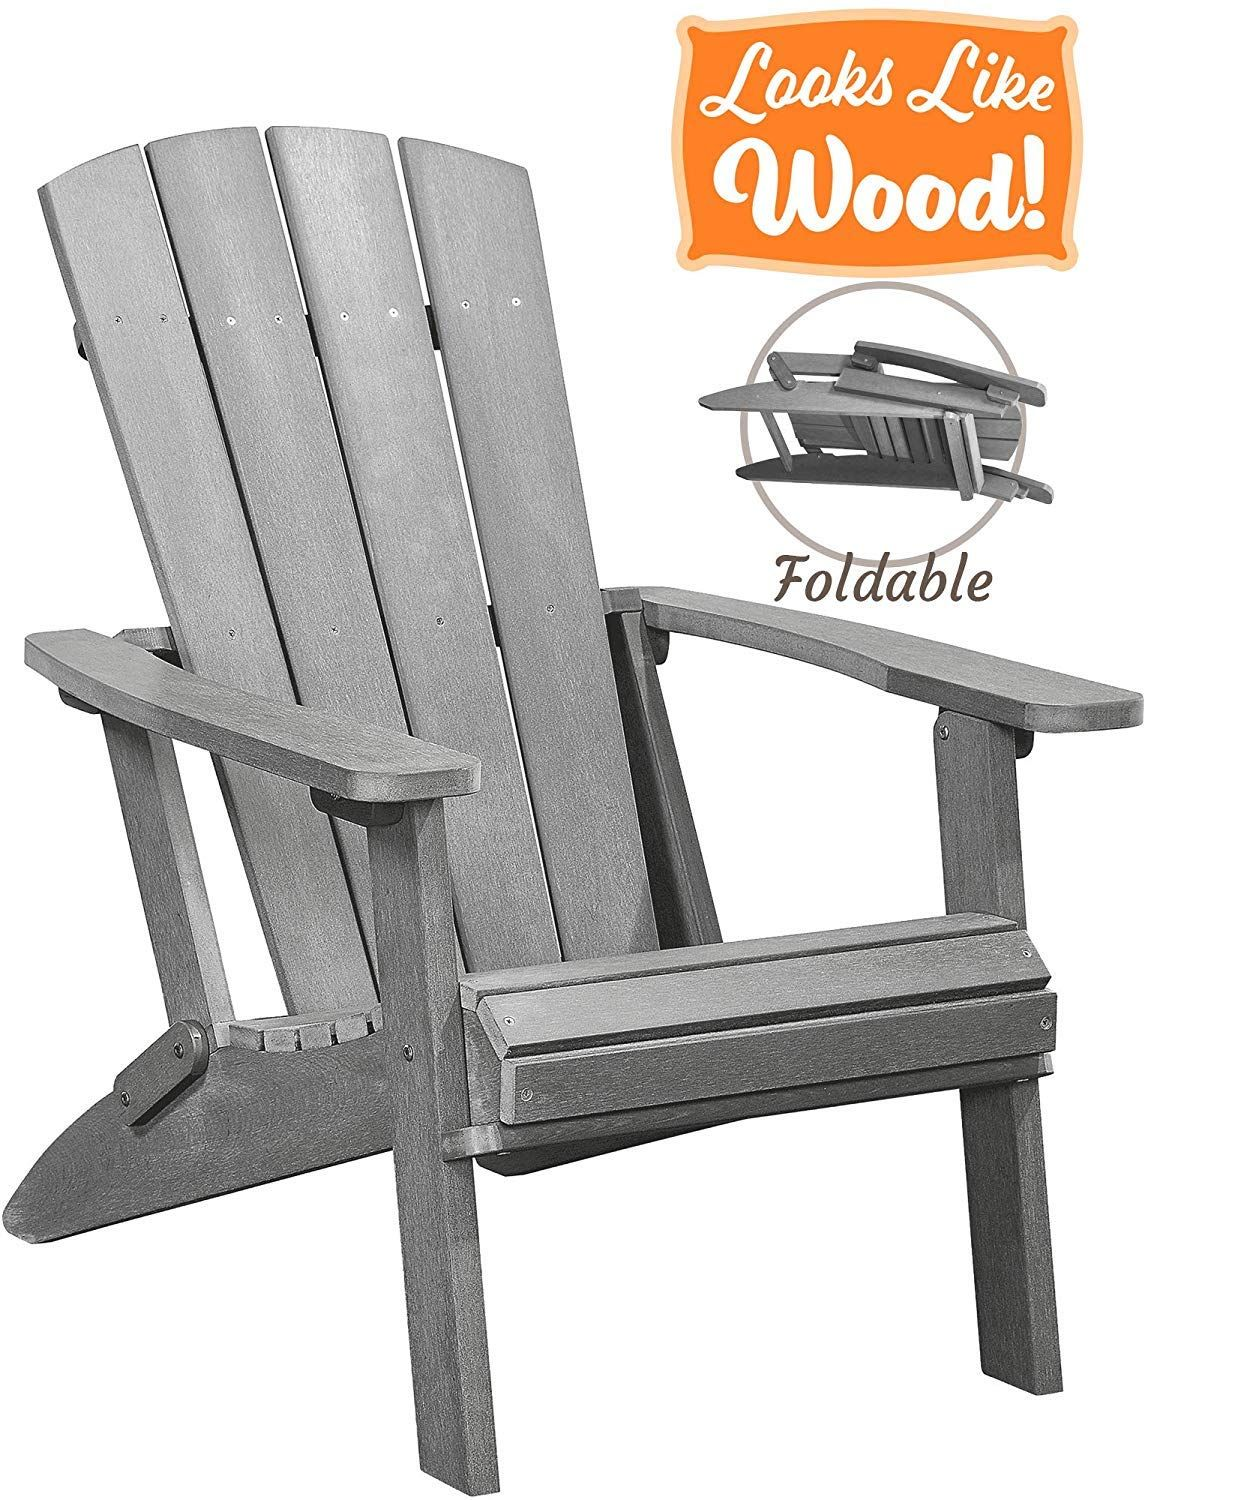 Adirondack Chairs For Sale In 2020 Wood Adirondack Chairs